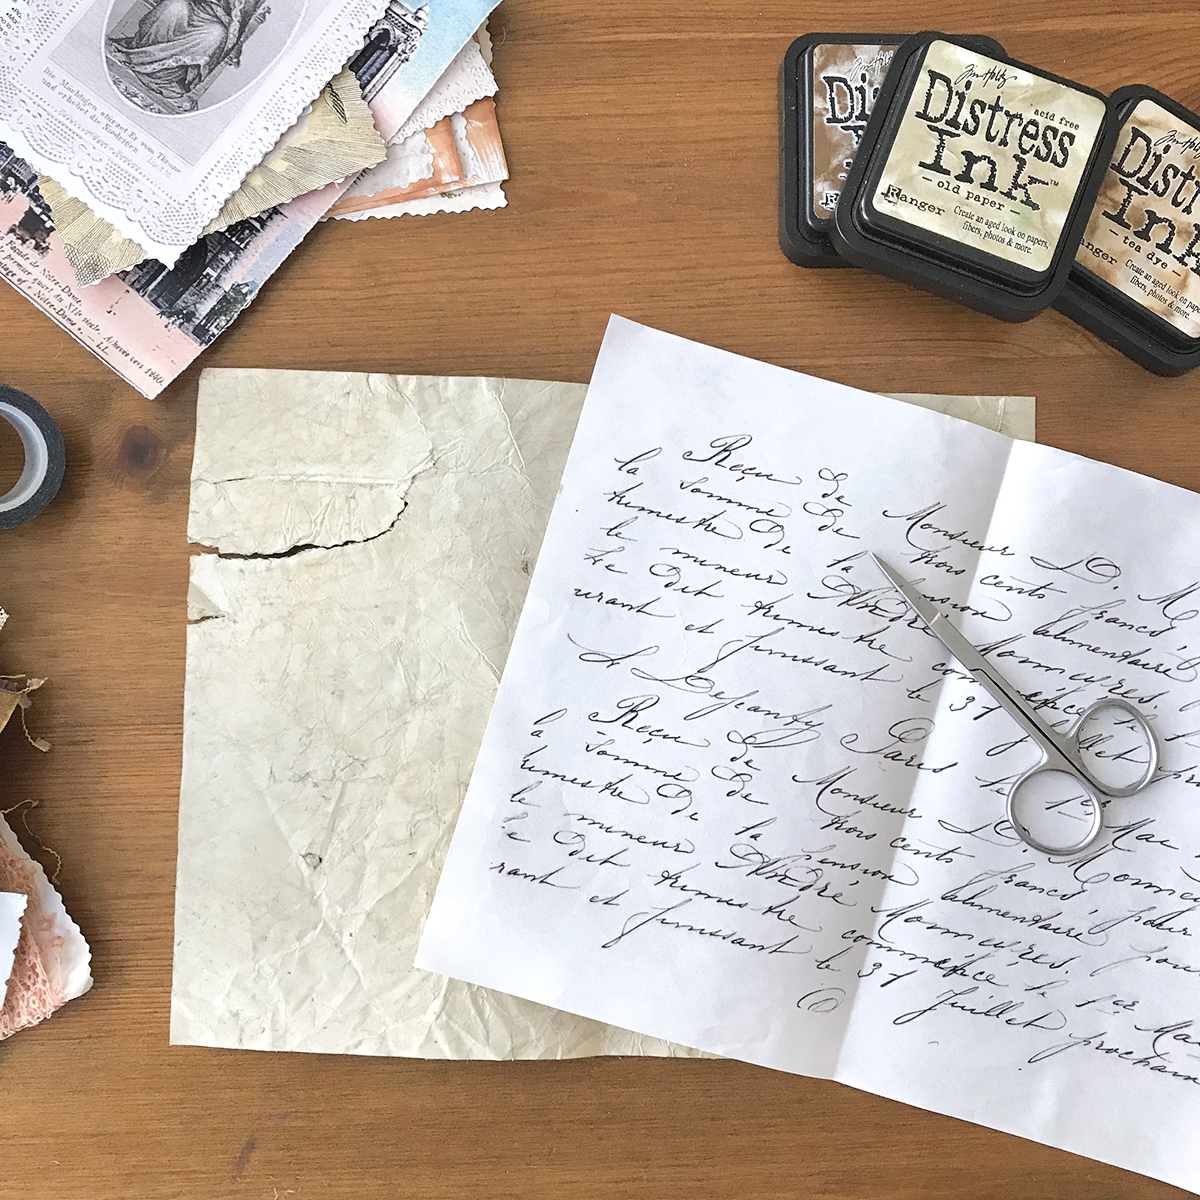 Creating a Junk Journal – Page Layouts 5! - The Graphics Fairy